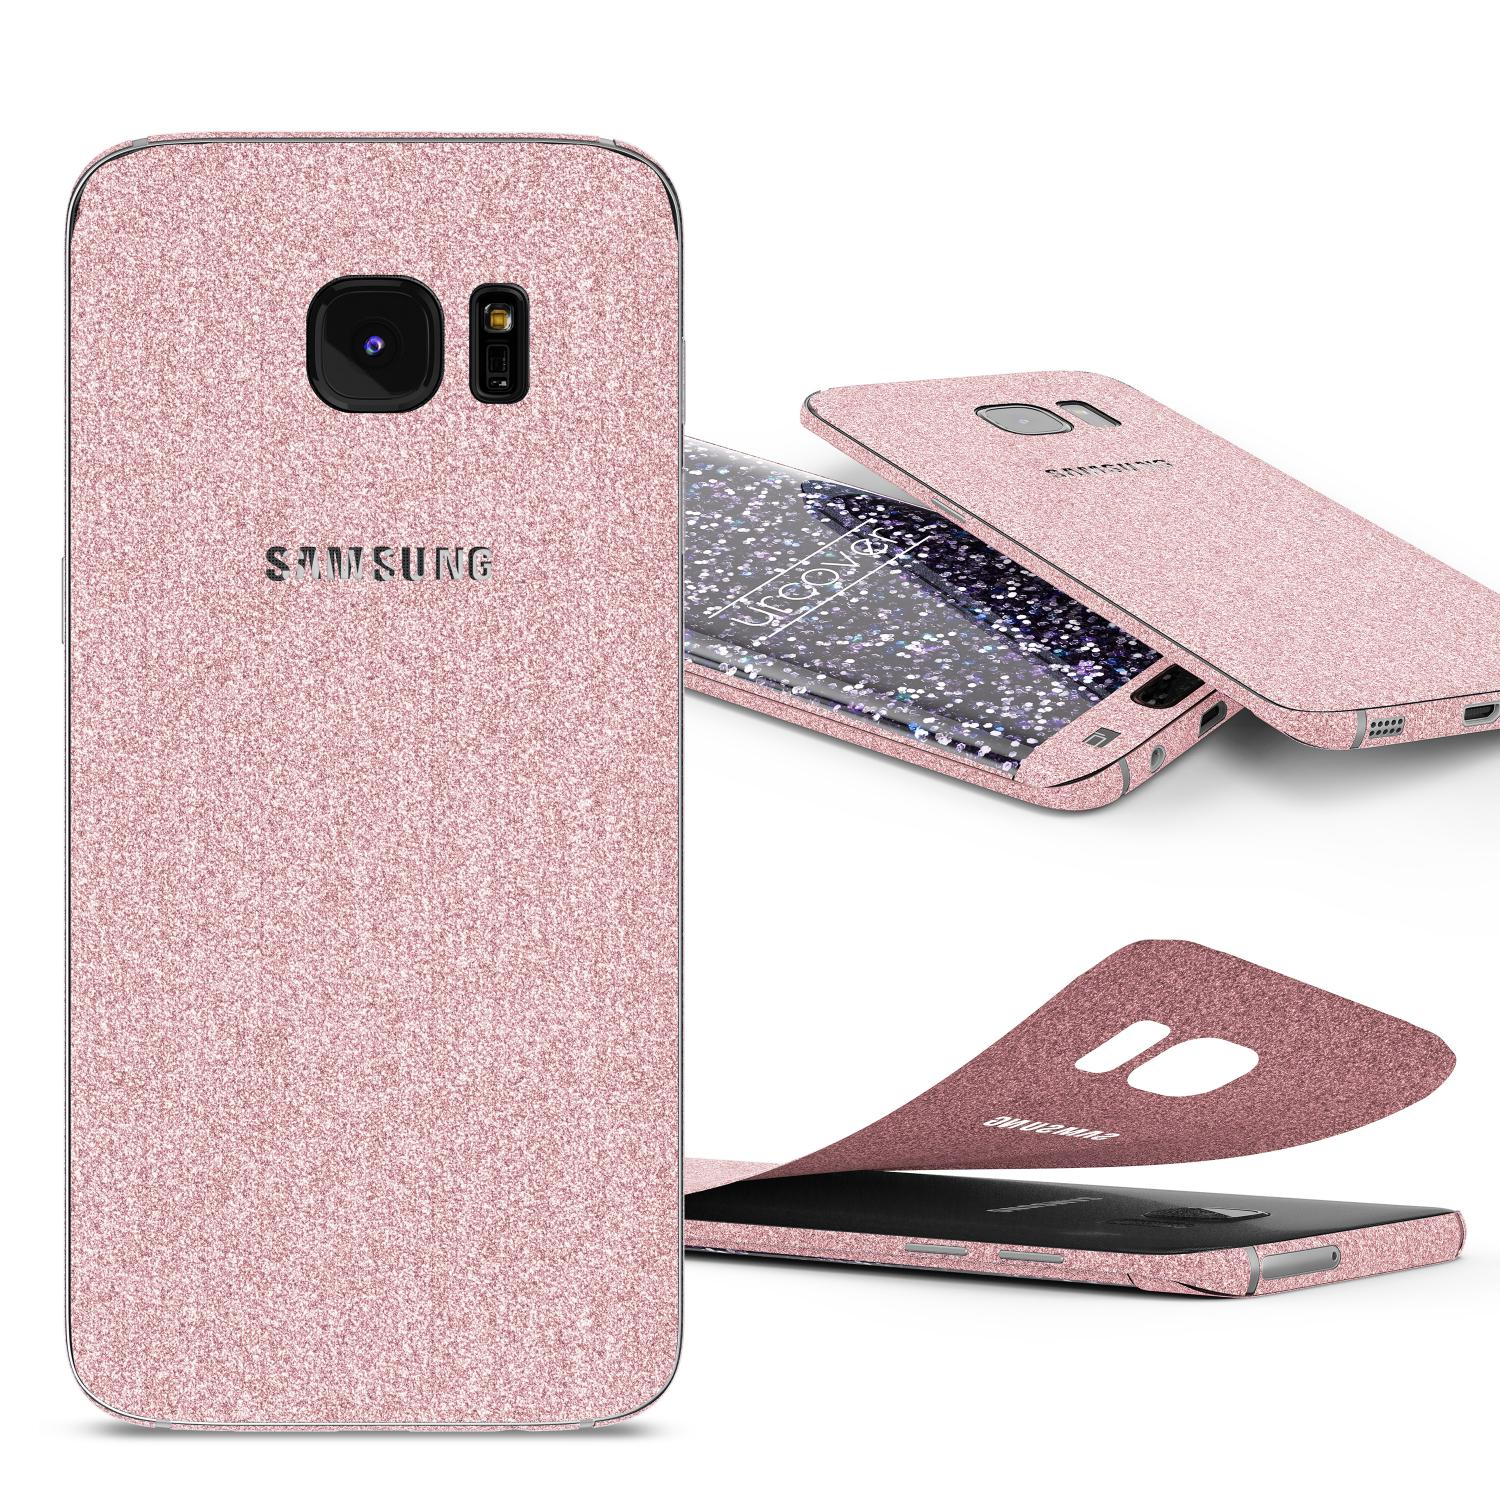 samsung galaxy s7 edge glitzer folie diamond design handy aufkleber schutz bling displayfolie. Black Bedroom Furniture Sets. Home Design Ideas